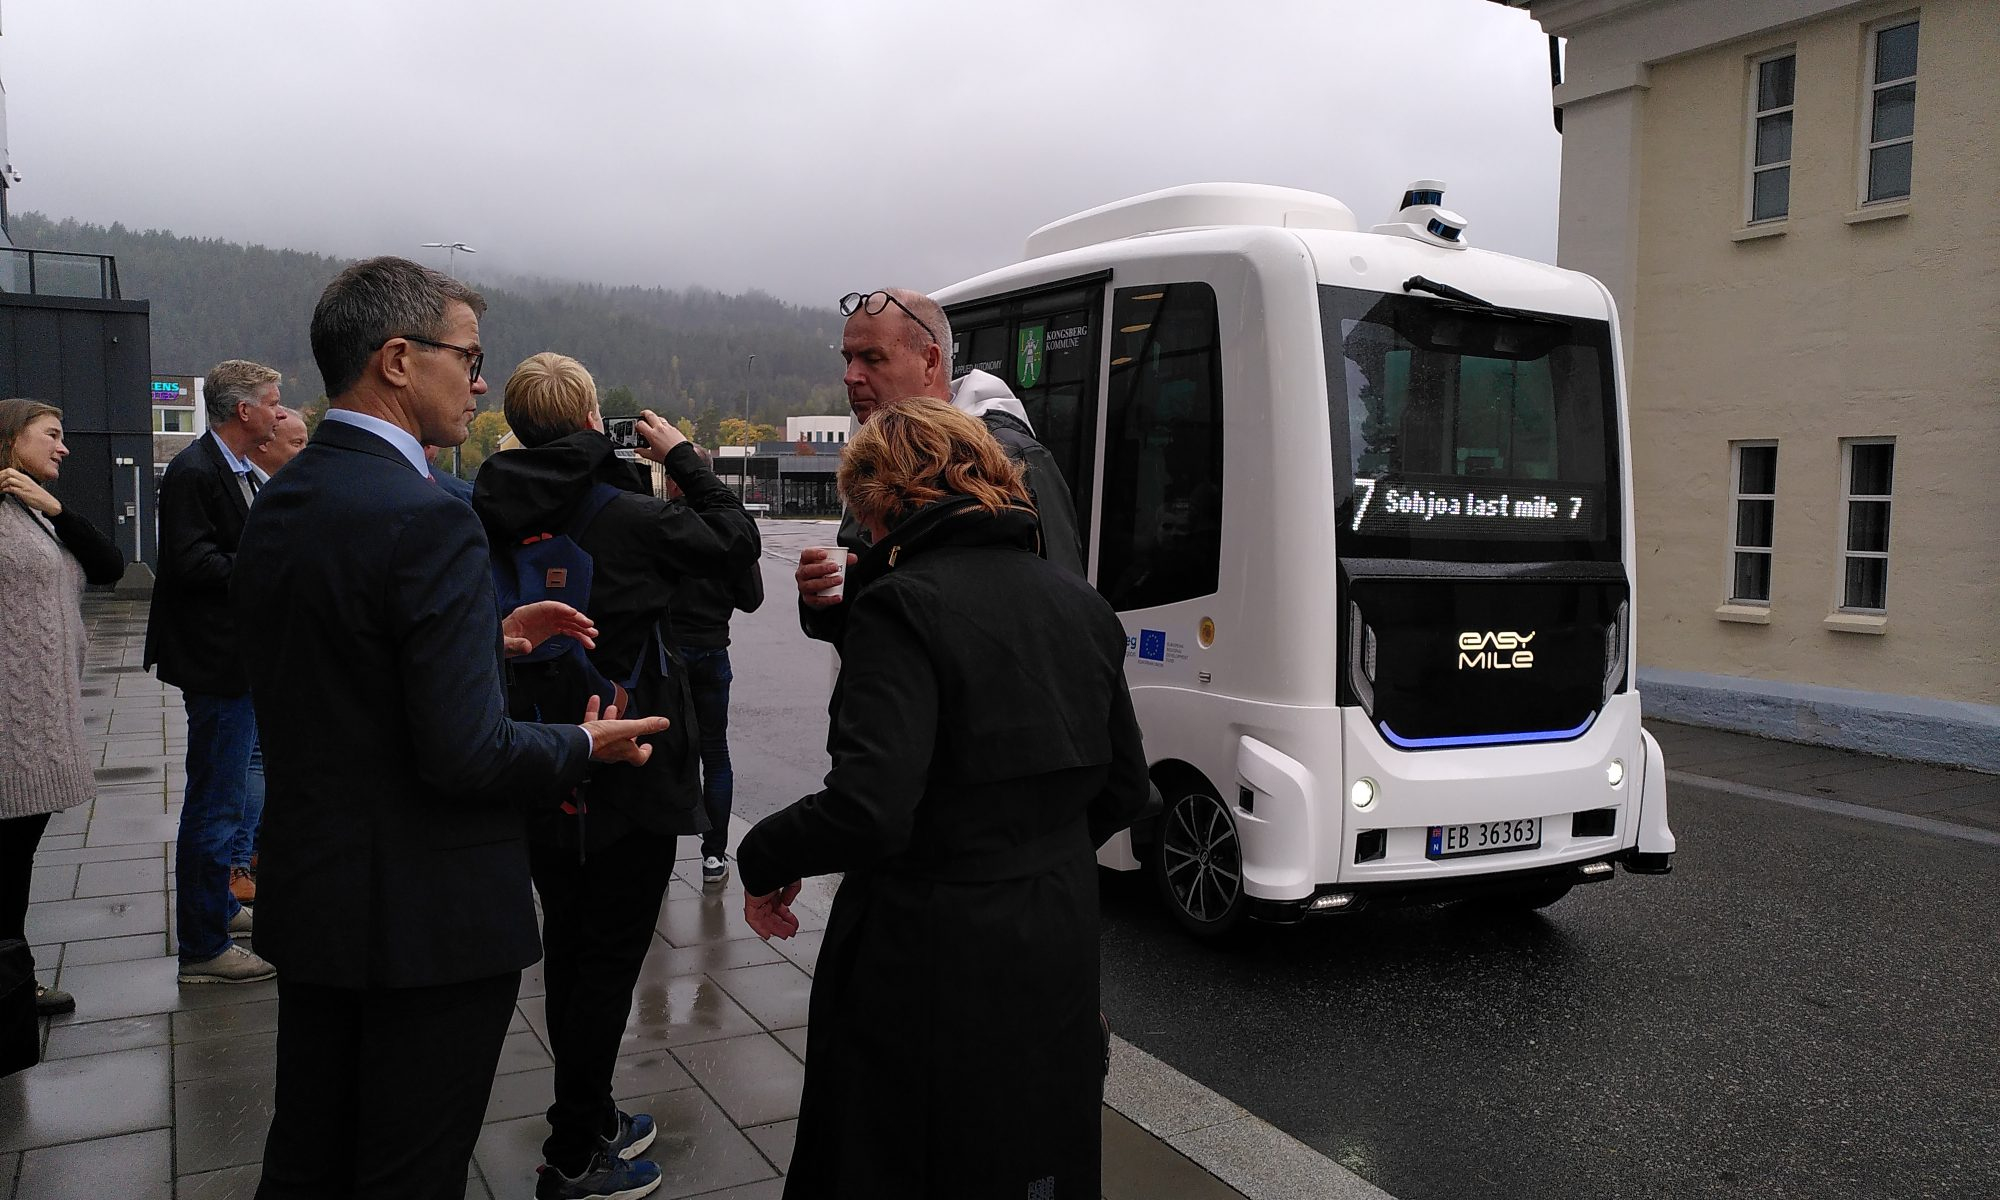 A group of people standing outside in the left, background grey and rainy skies and a silhouette of a hill, a robot bus on the road, a house on the right.